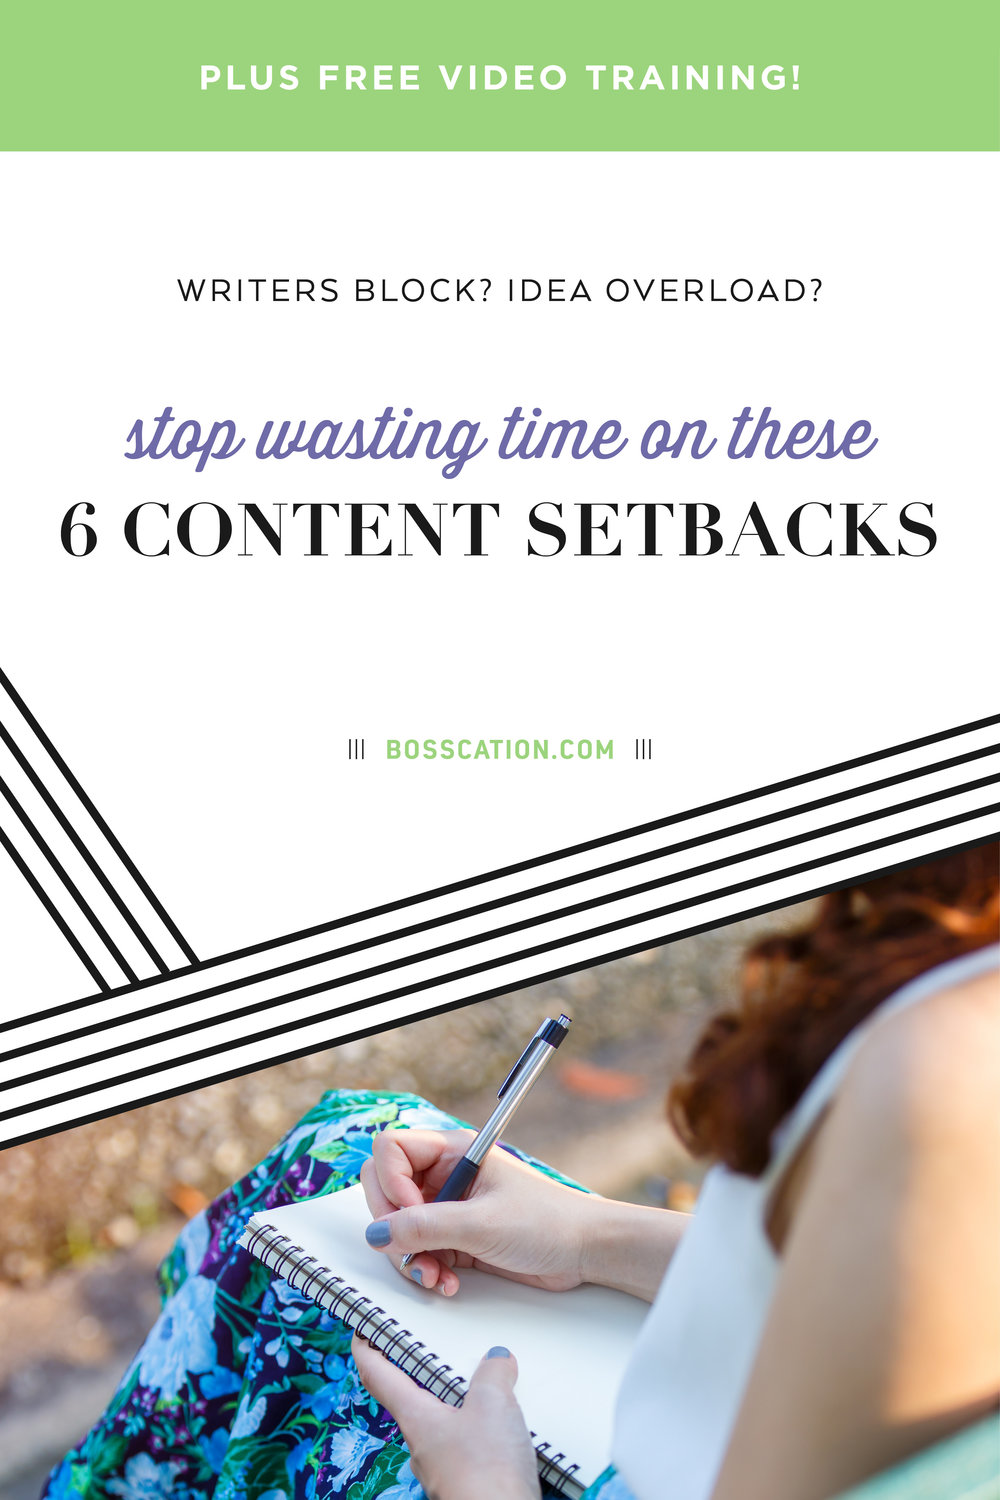 Writers block? Idea overload? What content setbacks are keeping you from creating blogs, video, social media posts and email newsletters? Learn how to determine your marketing setbacks so you can write or film more efficiently and faster!